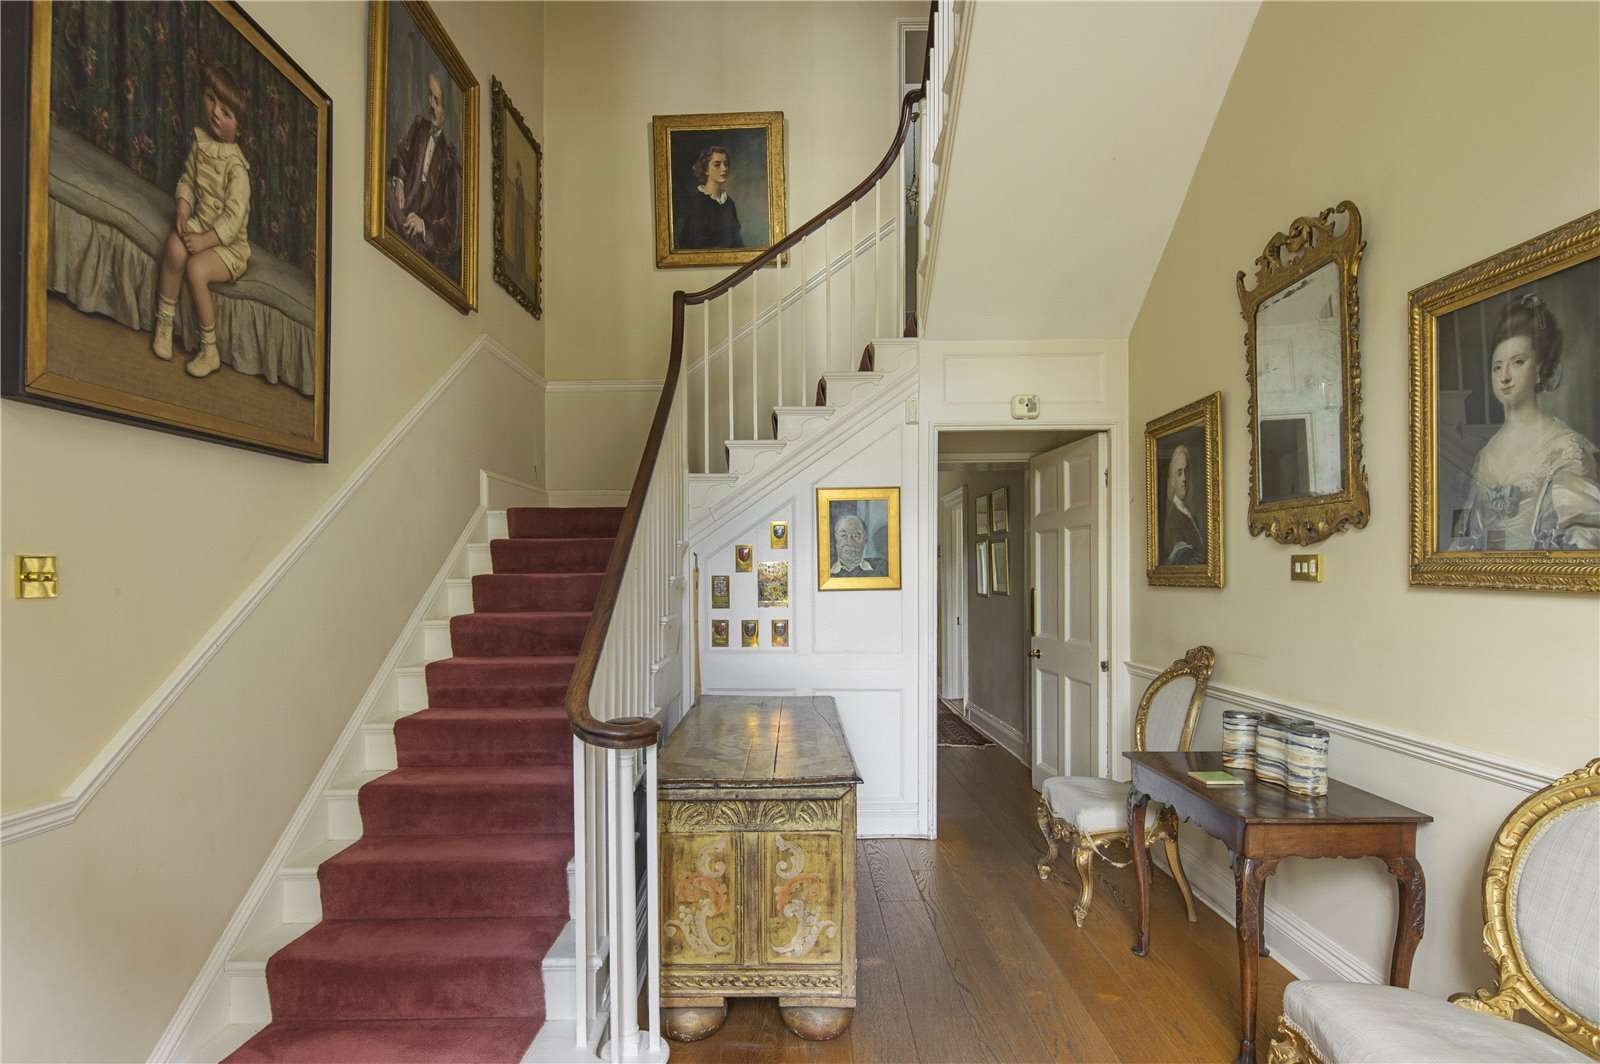 Beauforest House, Wallingford - Image Gallery 05 - Hall